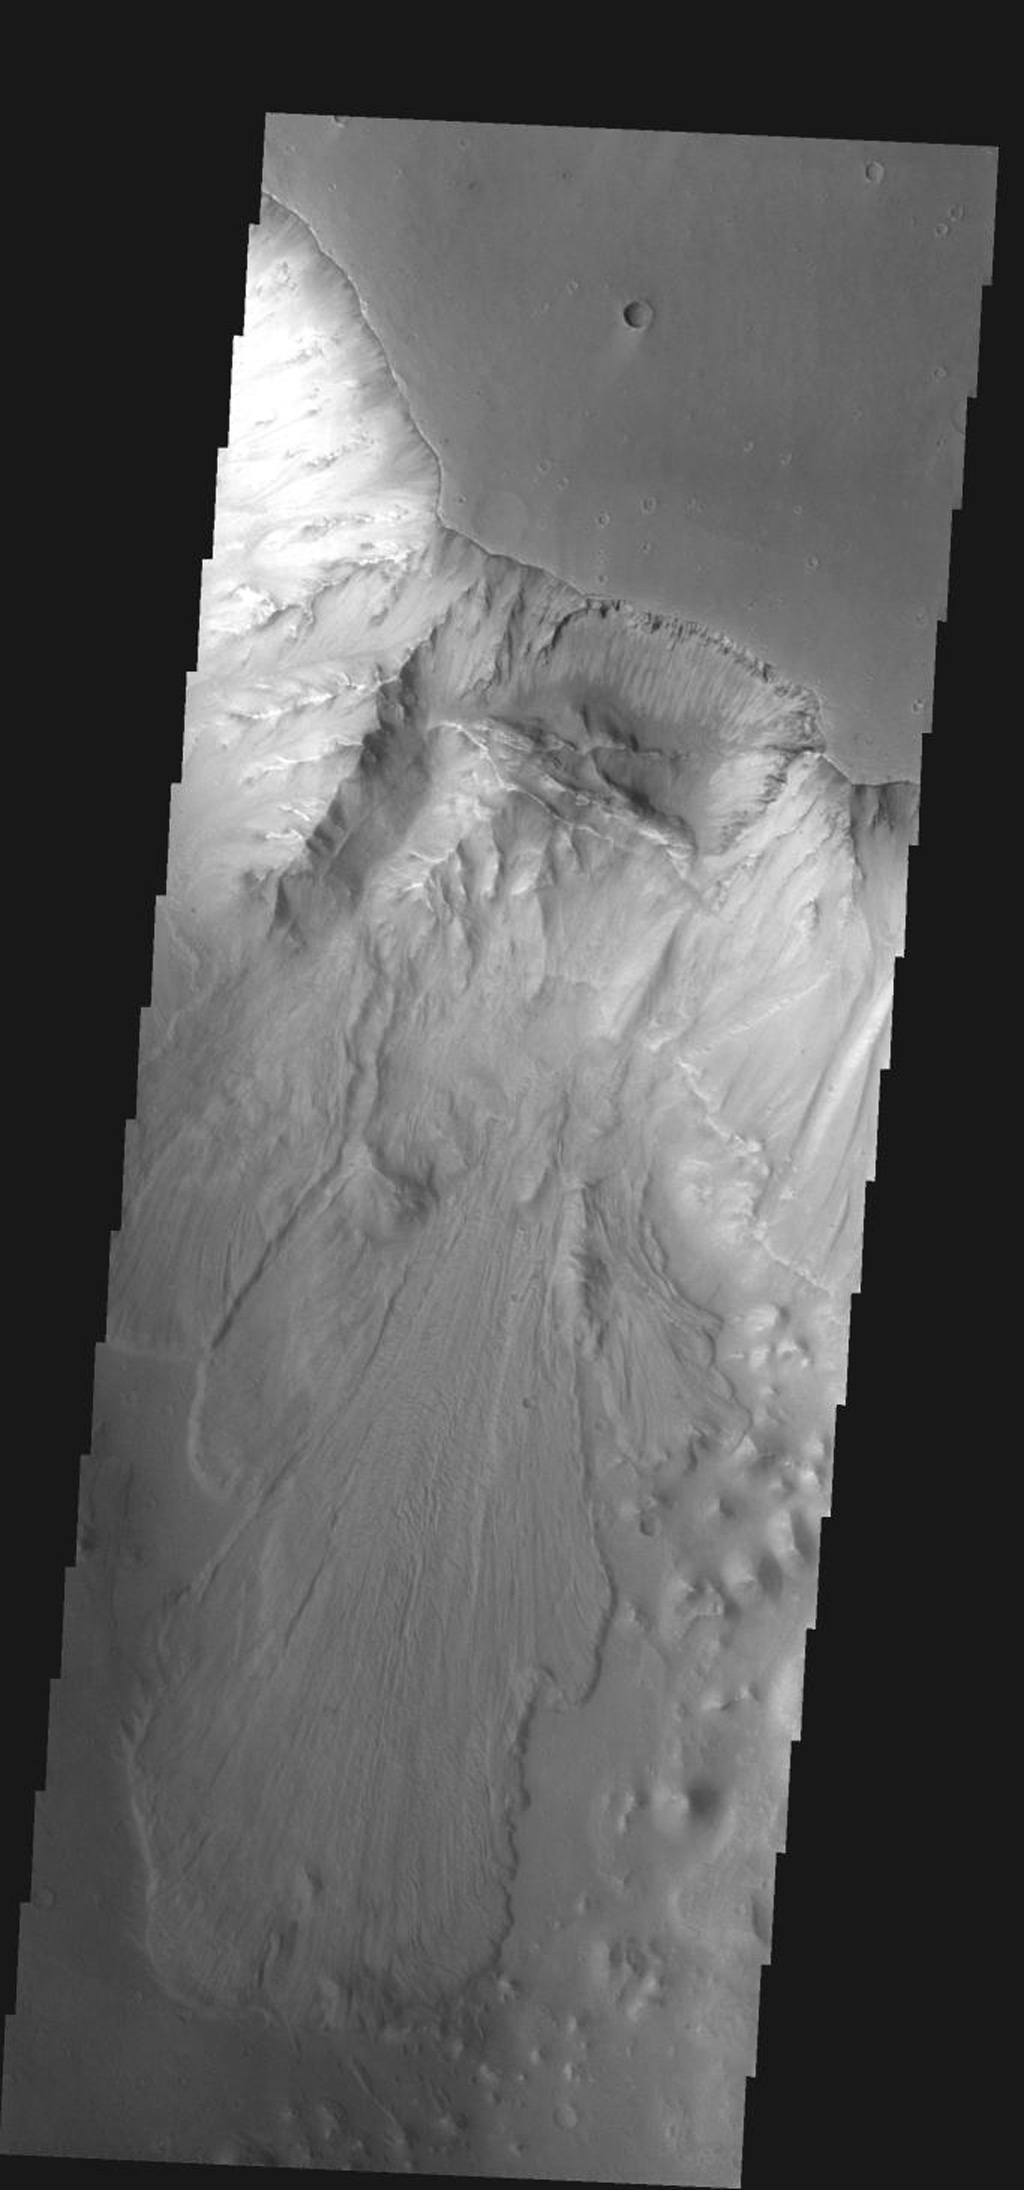 This large landslide is located within Ganges Chasma on Mars as seen by NASA's 2001 Mars Odyssey spacecraft.